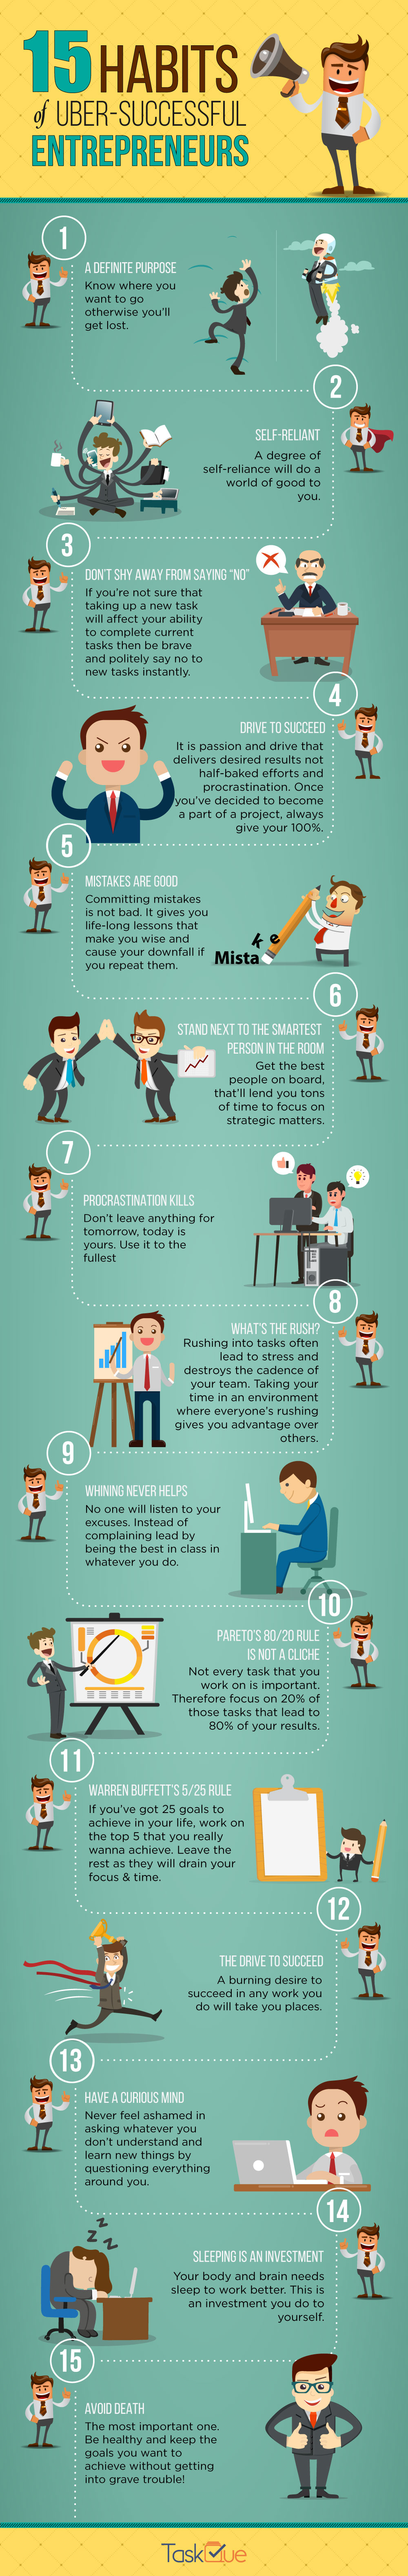 15-Habits-of-Uber-Successful-Entrepreneurs